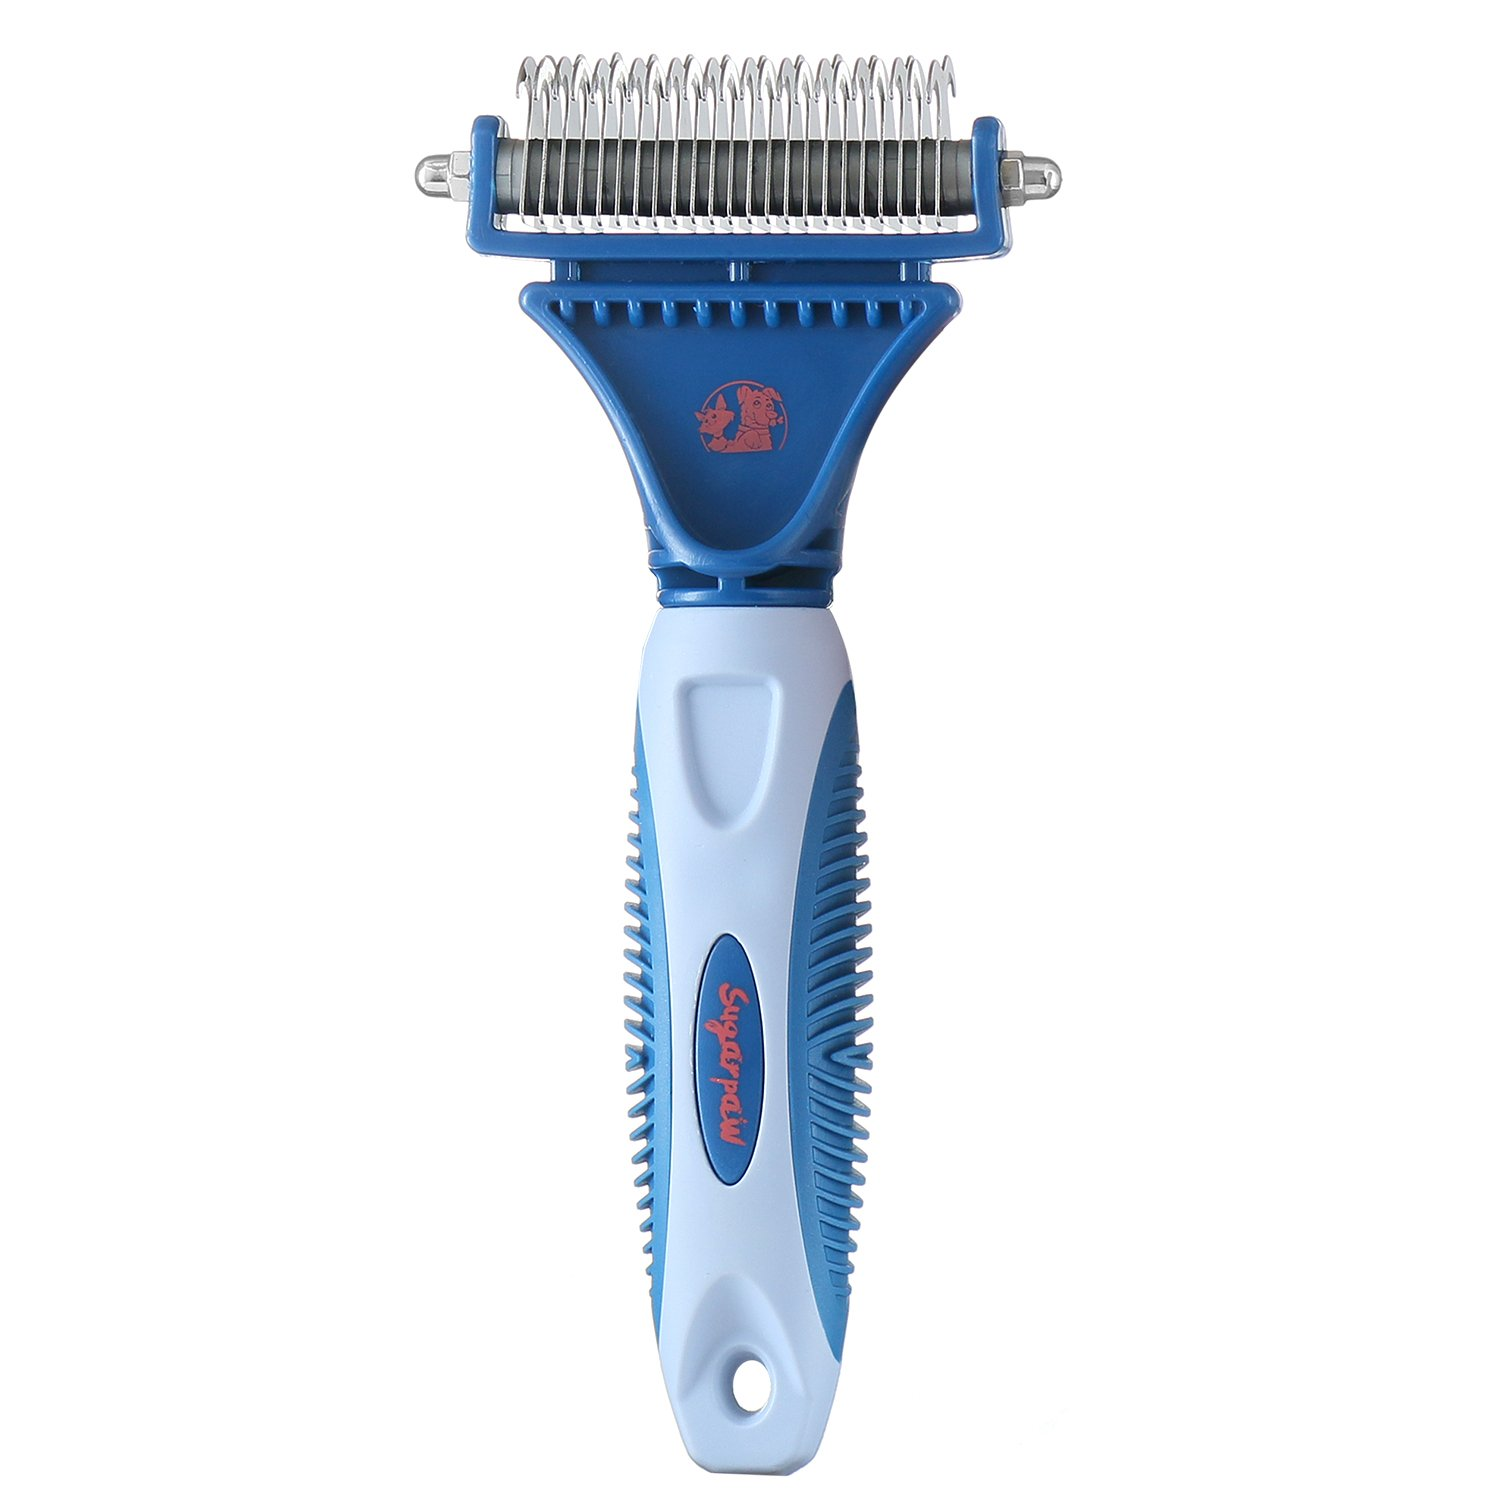 Sugarpaw Dual Dematting Professional Grooming Rake Comb For Dogs And Cats - 2 Sided Pet Detangler Tool - Matted Fur Remover - For Painless Removal Of Knots, Tangles & Mats